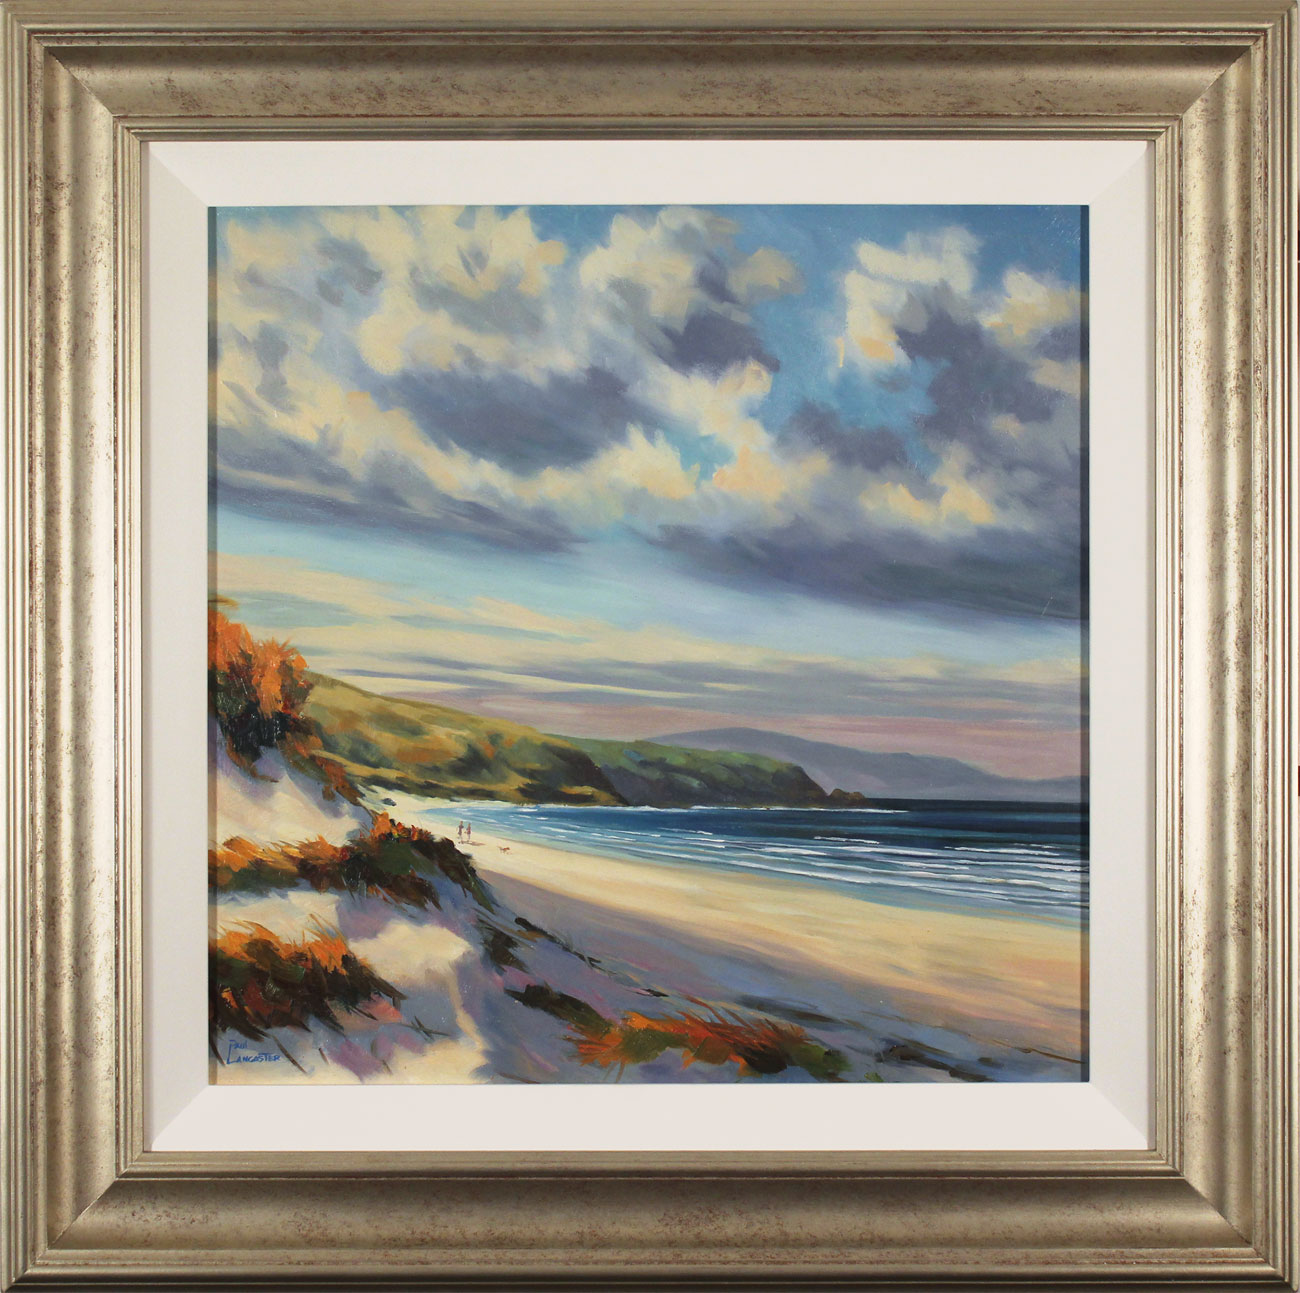 Paul Lancaster, Original oil painting on panel, Beyond the Dunes, click to enlarge